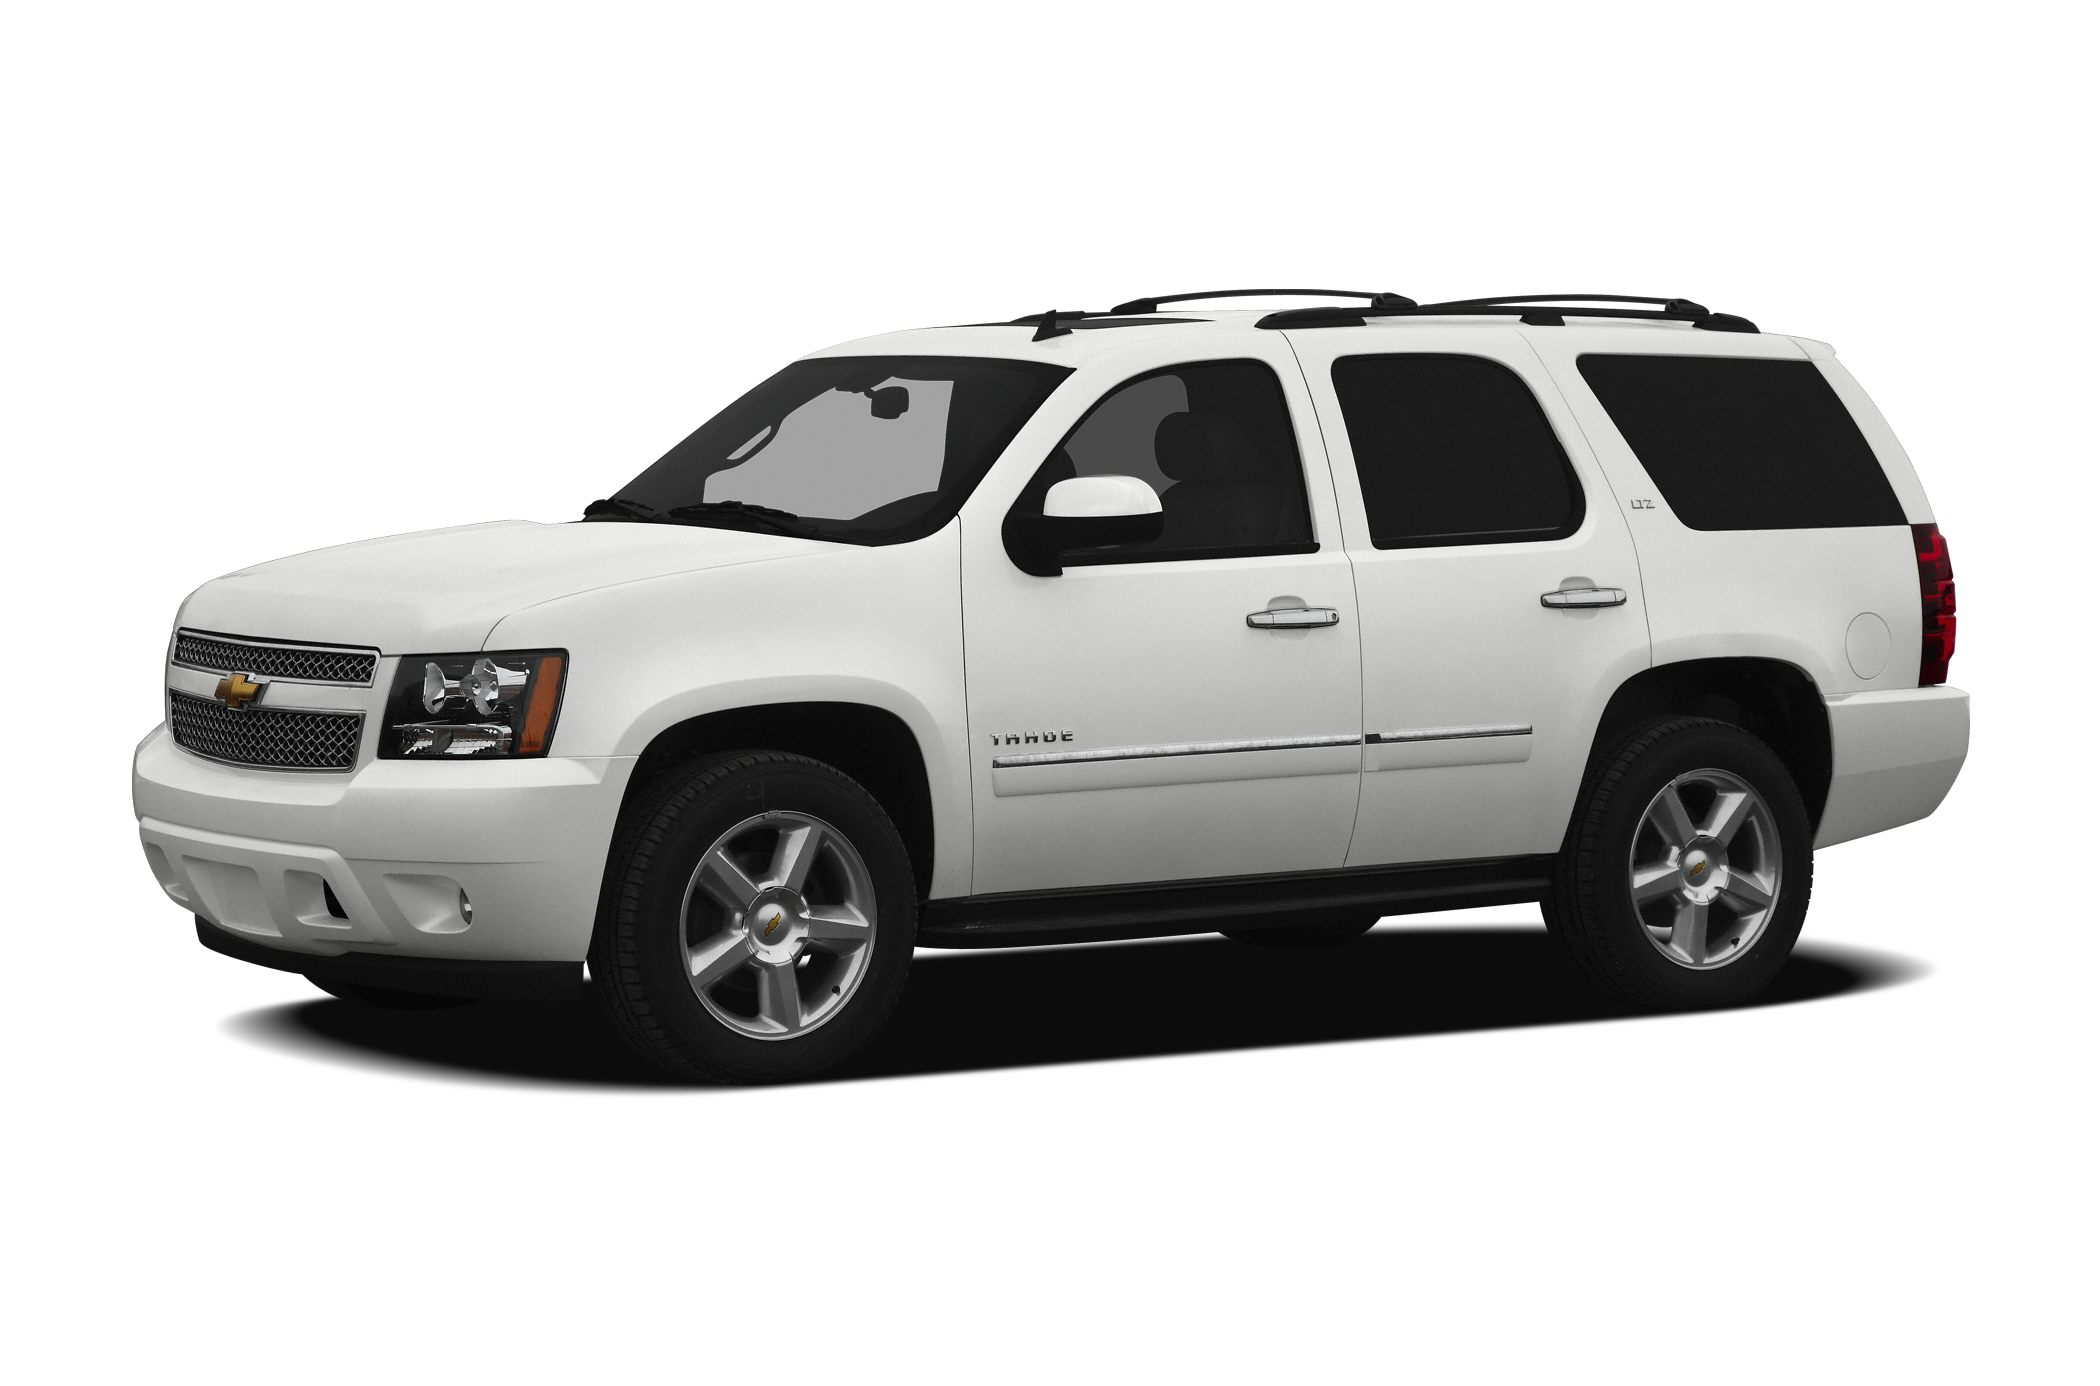 2008 Chevrolet Tahoe LTZ SUV for sale in Smyrna for $22,000 with 74,166 miles.